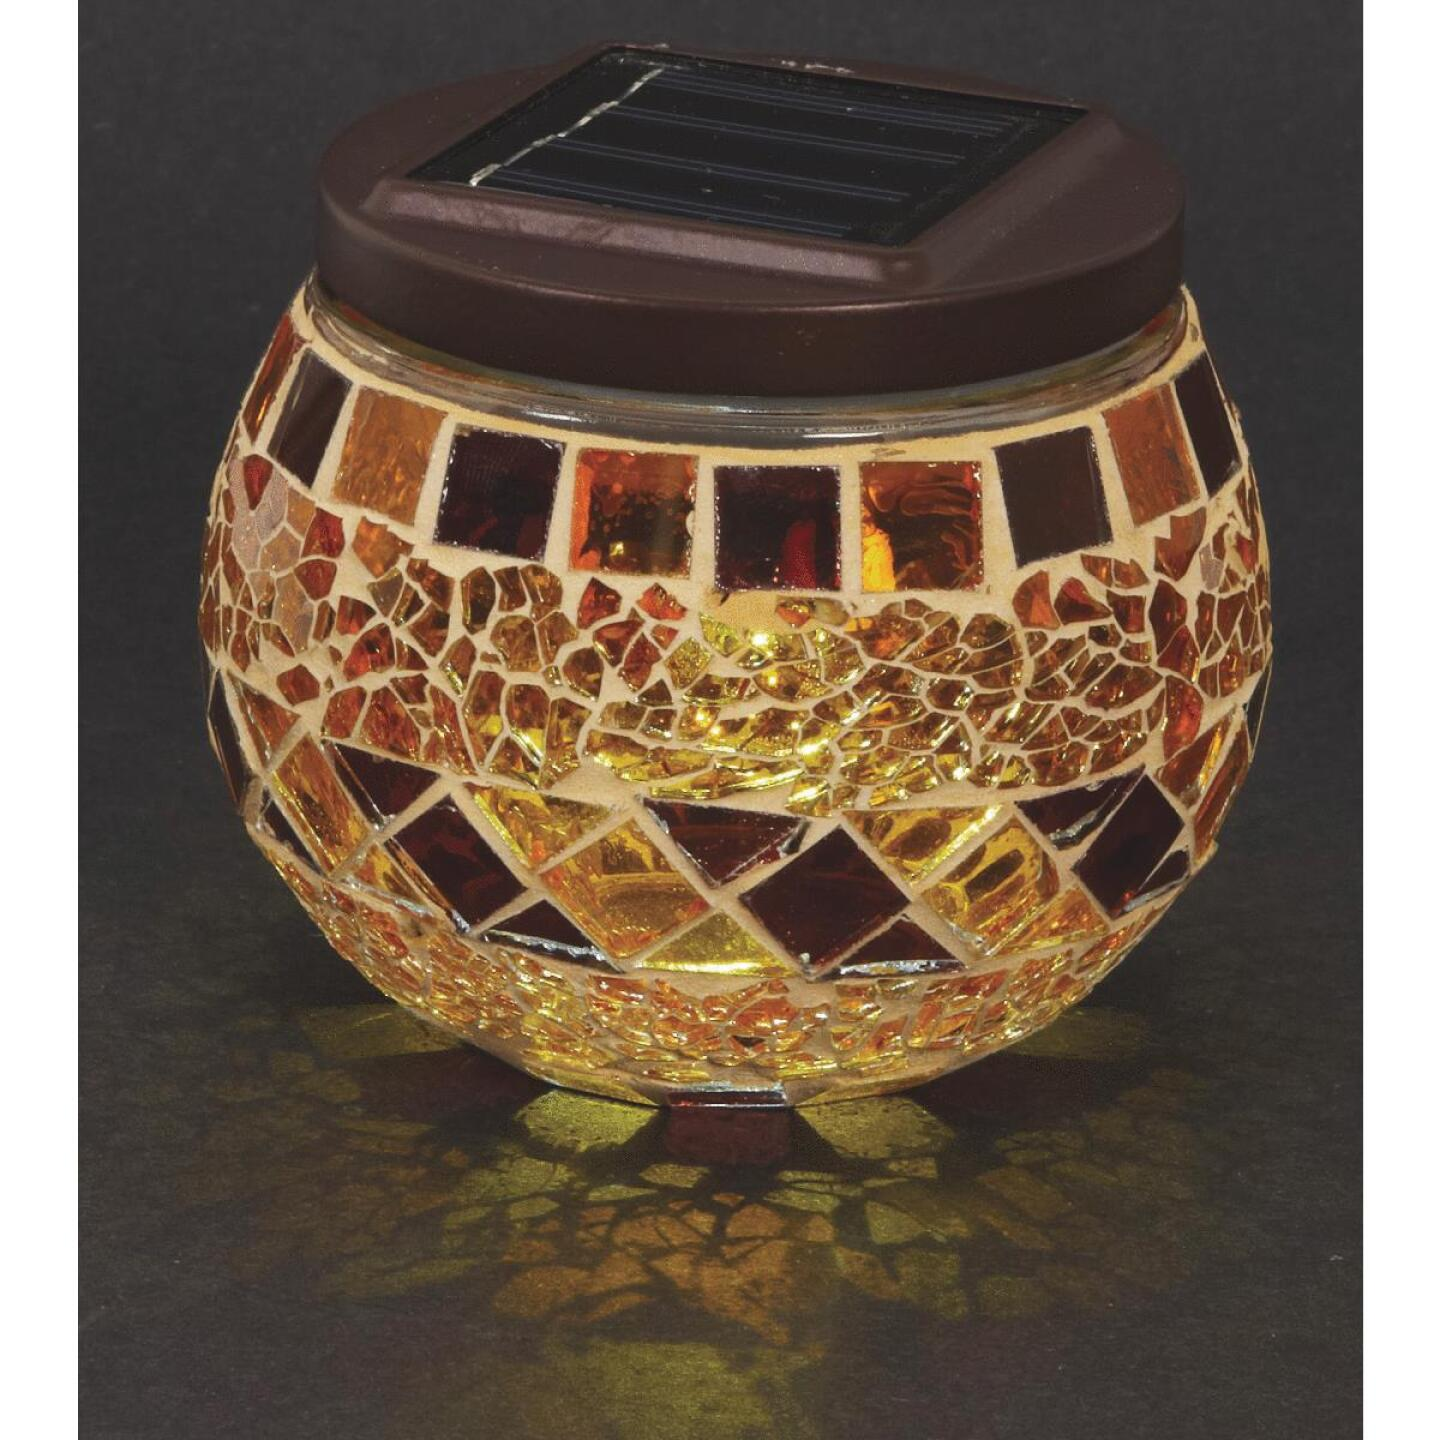 Outdoor Expressions 3.5 In. H. x 3.5 In. Dia. Autumn Harvest Tile Tabletop Solar Patio Light Image 4